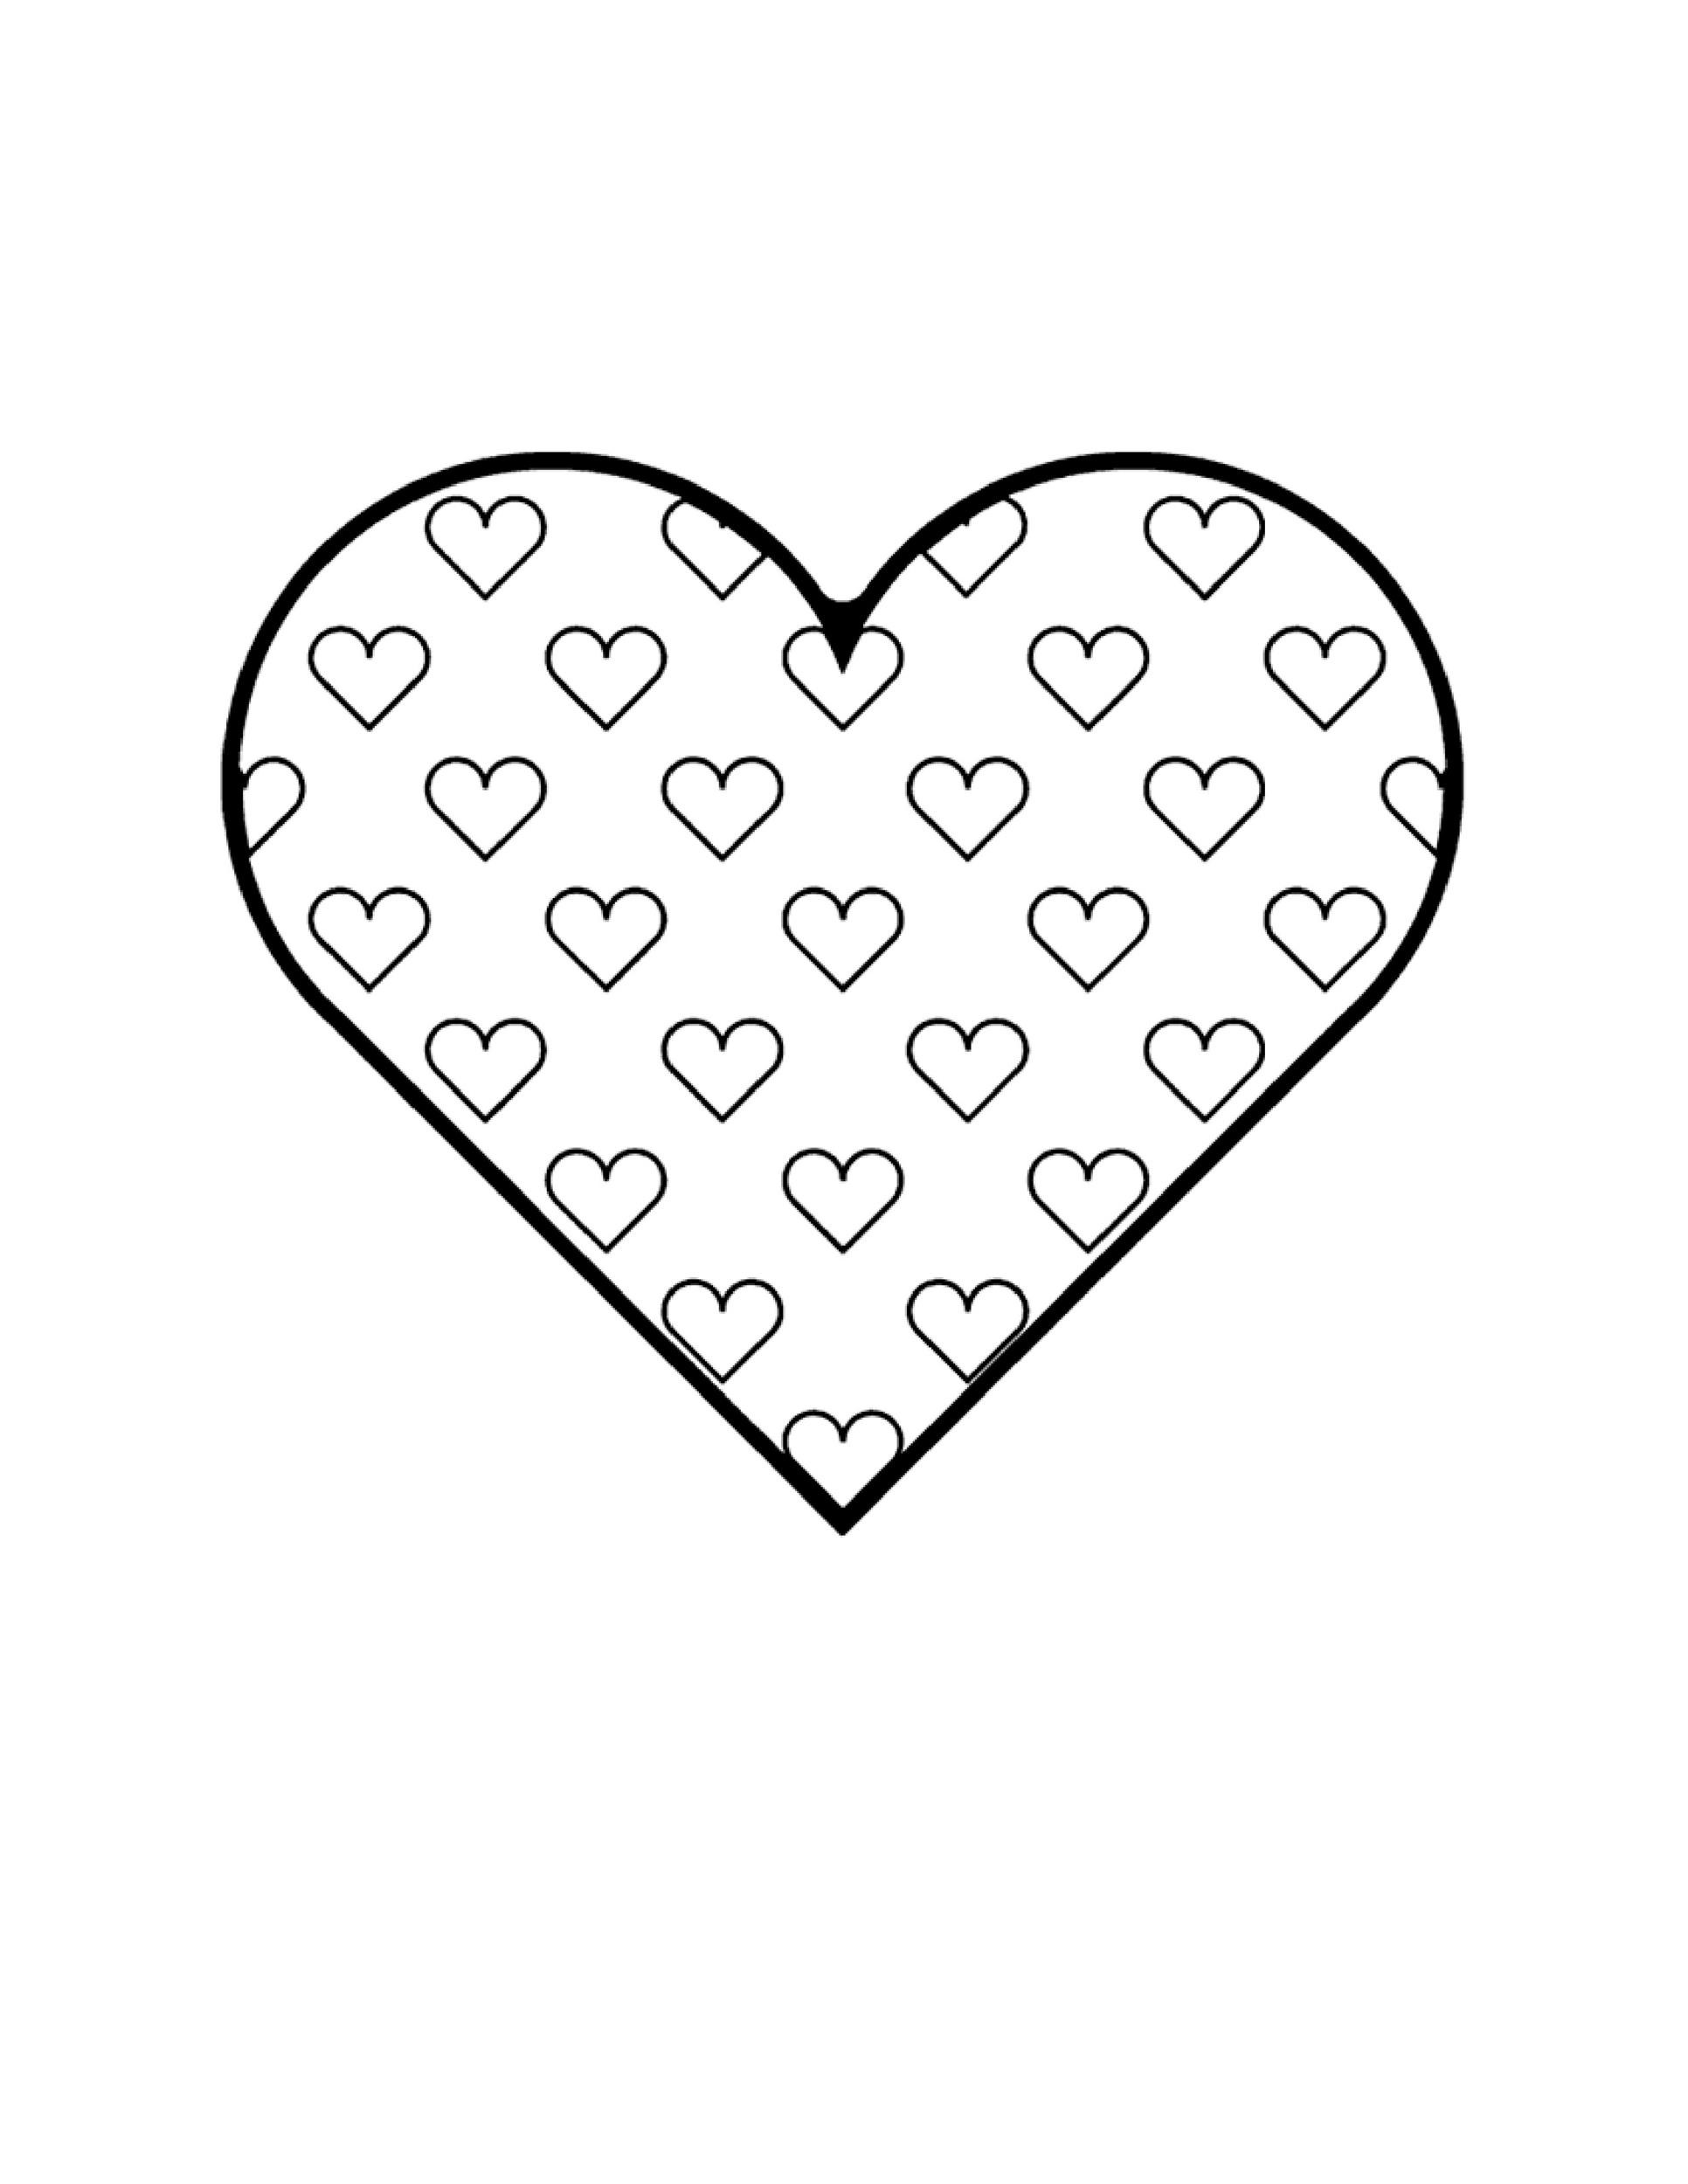 40 Printable Heart Templates  15 Usage Examples